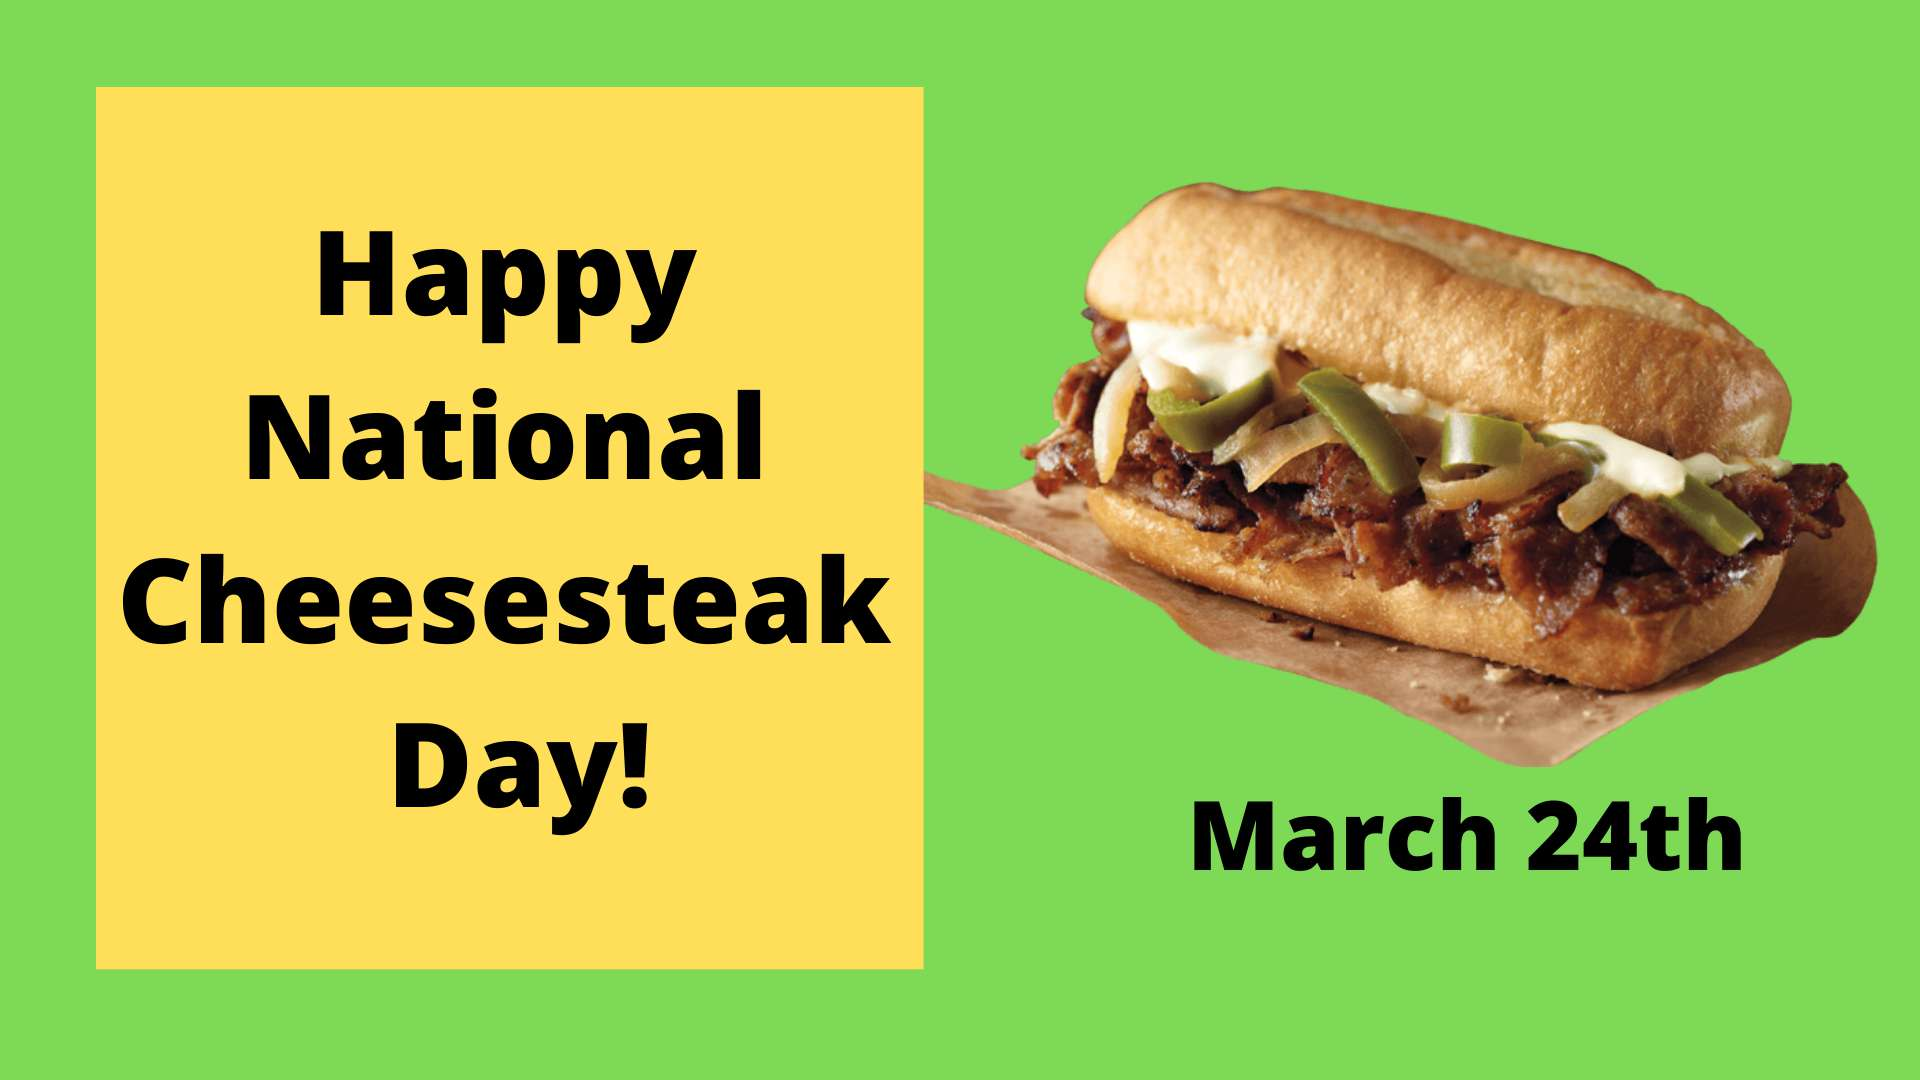 National Cheesesteak Day Wishes Unique Image